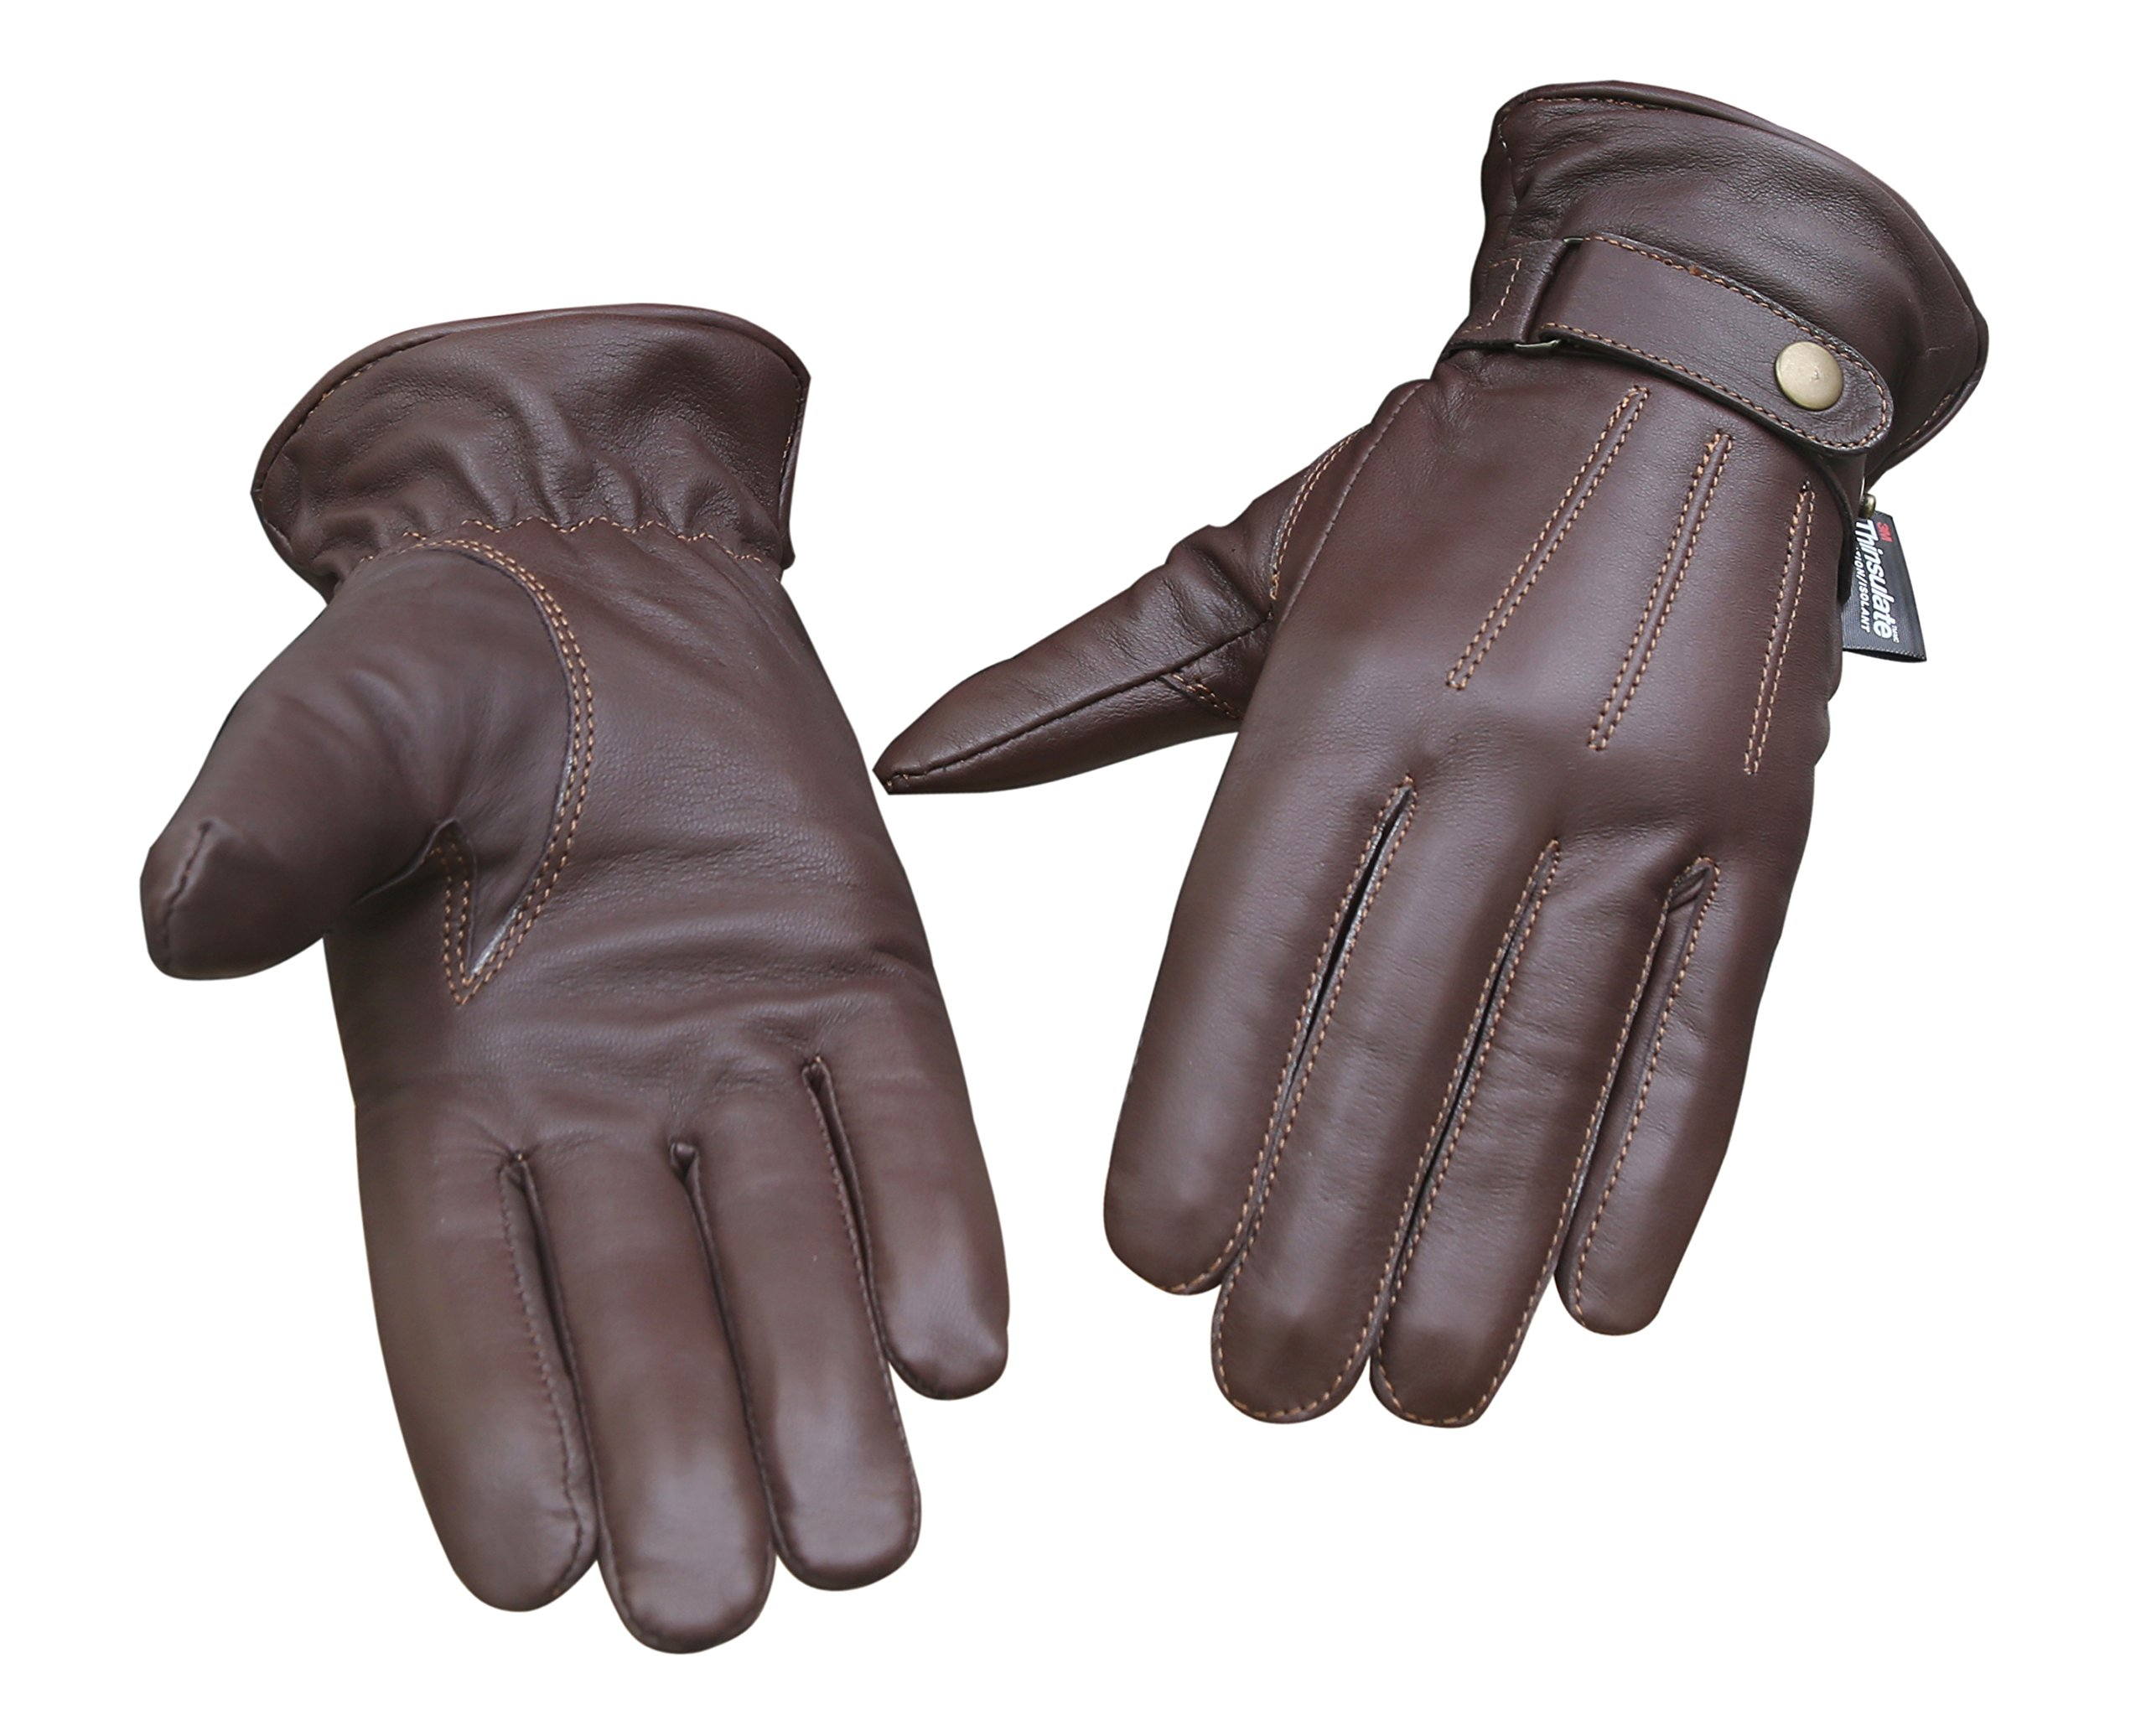 Soft Sheep Leather Outdoor Driving Cycling Fashion Winter Women Gloves (Large)